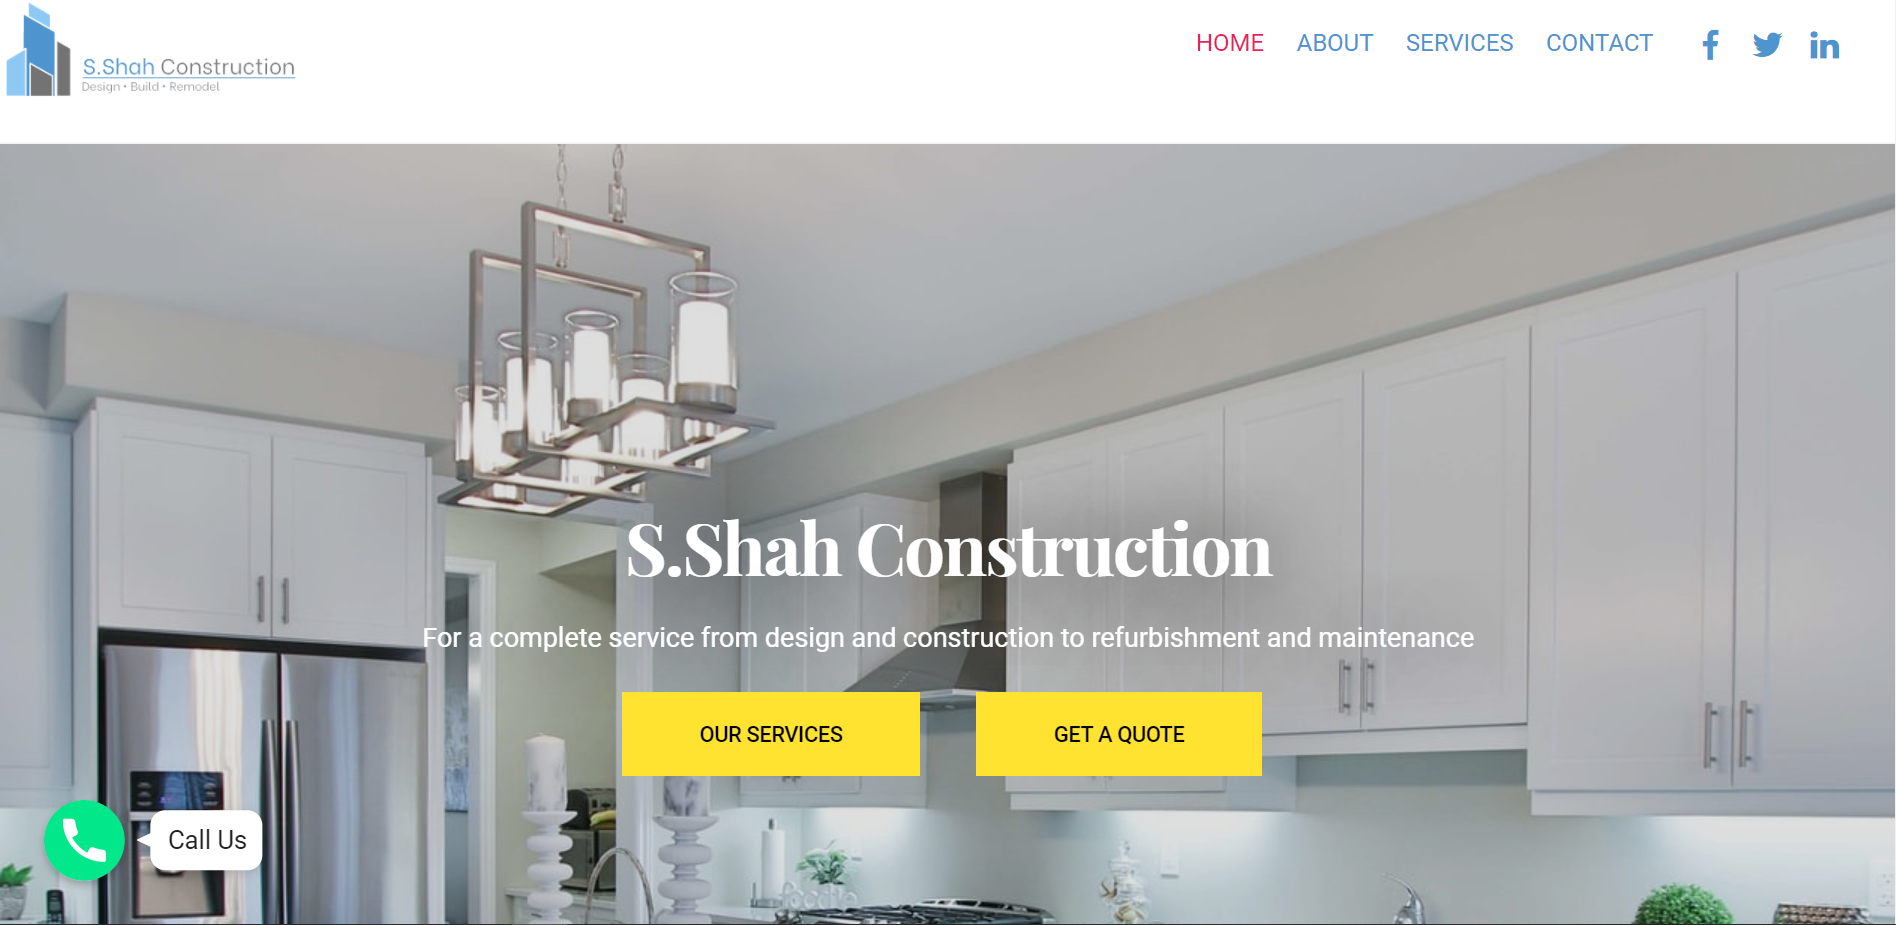 WEBSITE SOLUTIONS FOR S.SHAH CONSTRUCTION